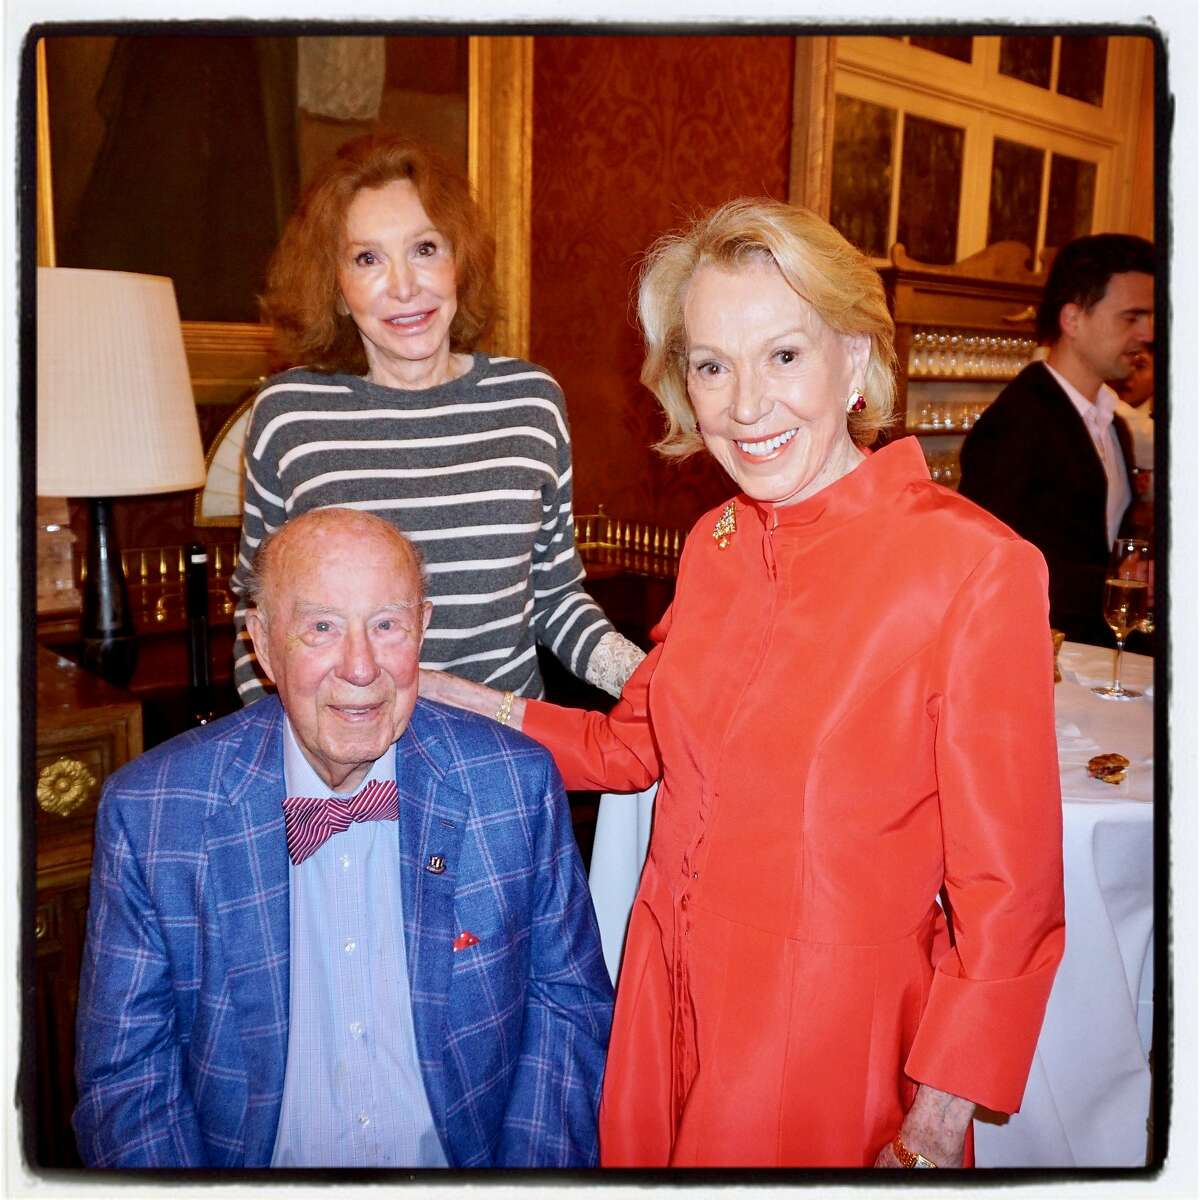 Ann Getty (center) celebrates the SF Consular Corps at a holiday party in her home with George and Charlotte Shultz.